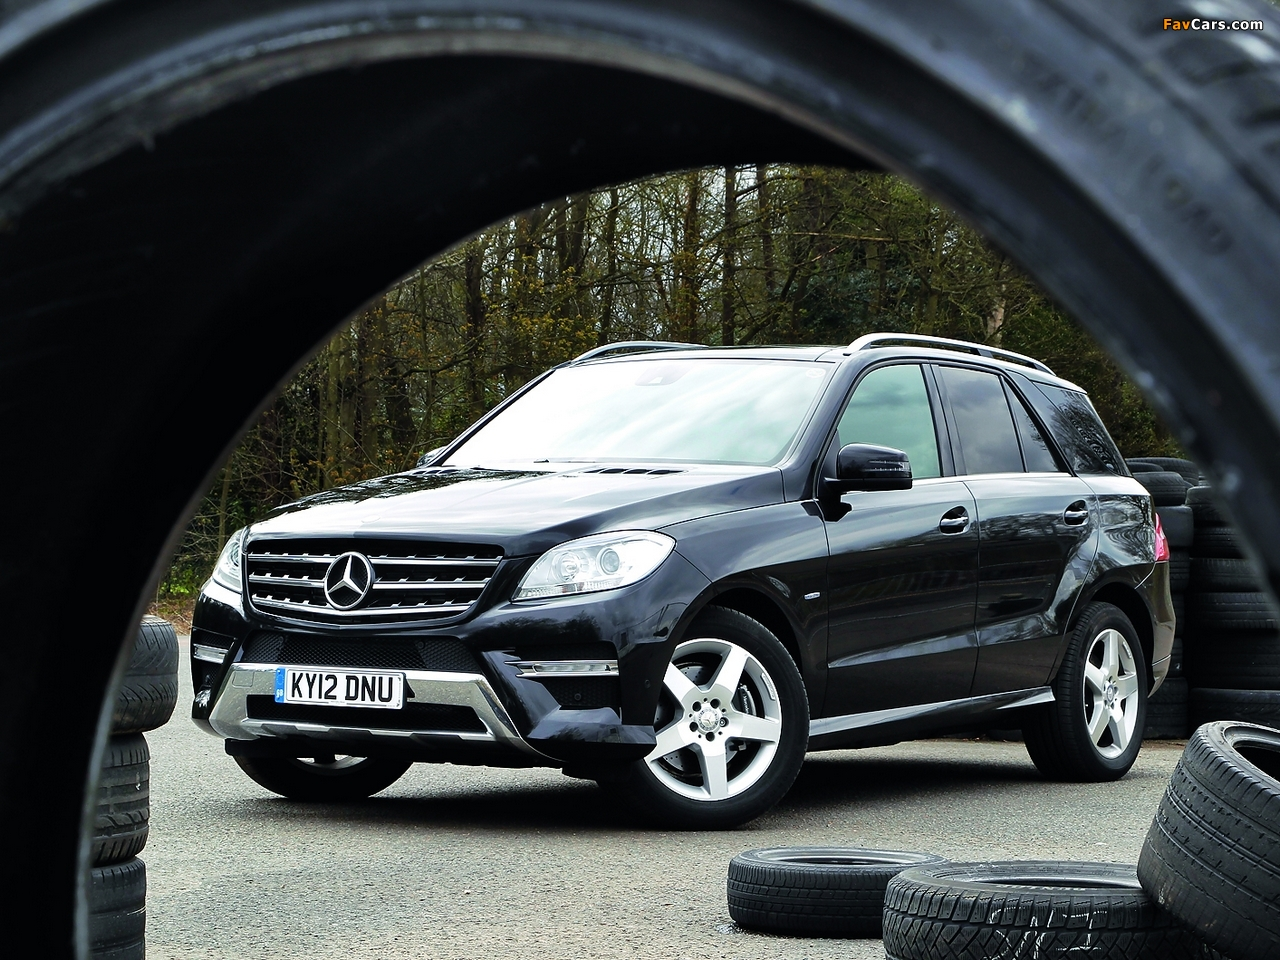 Mercedes benz ml 250 bluetec uk spec w166 2011 pictures for Mercedes benz ml 250 bluetec